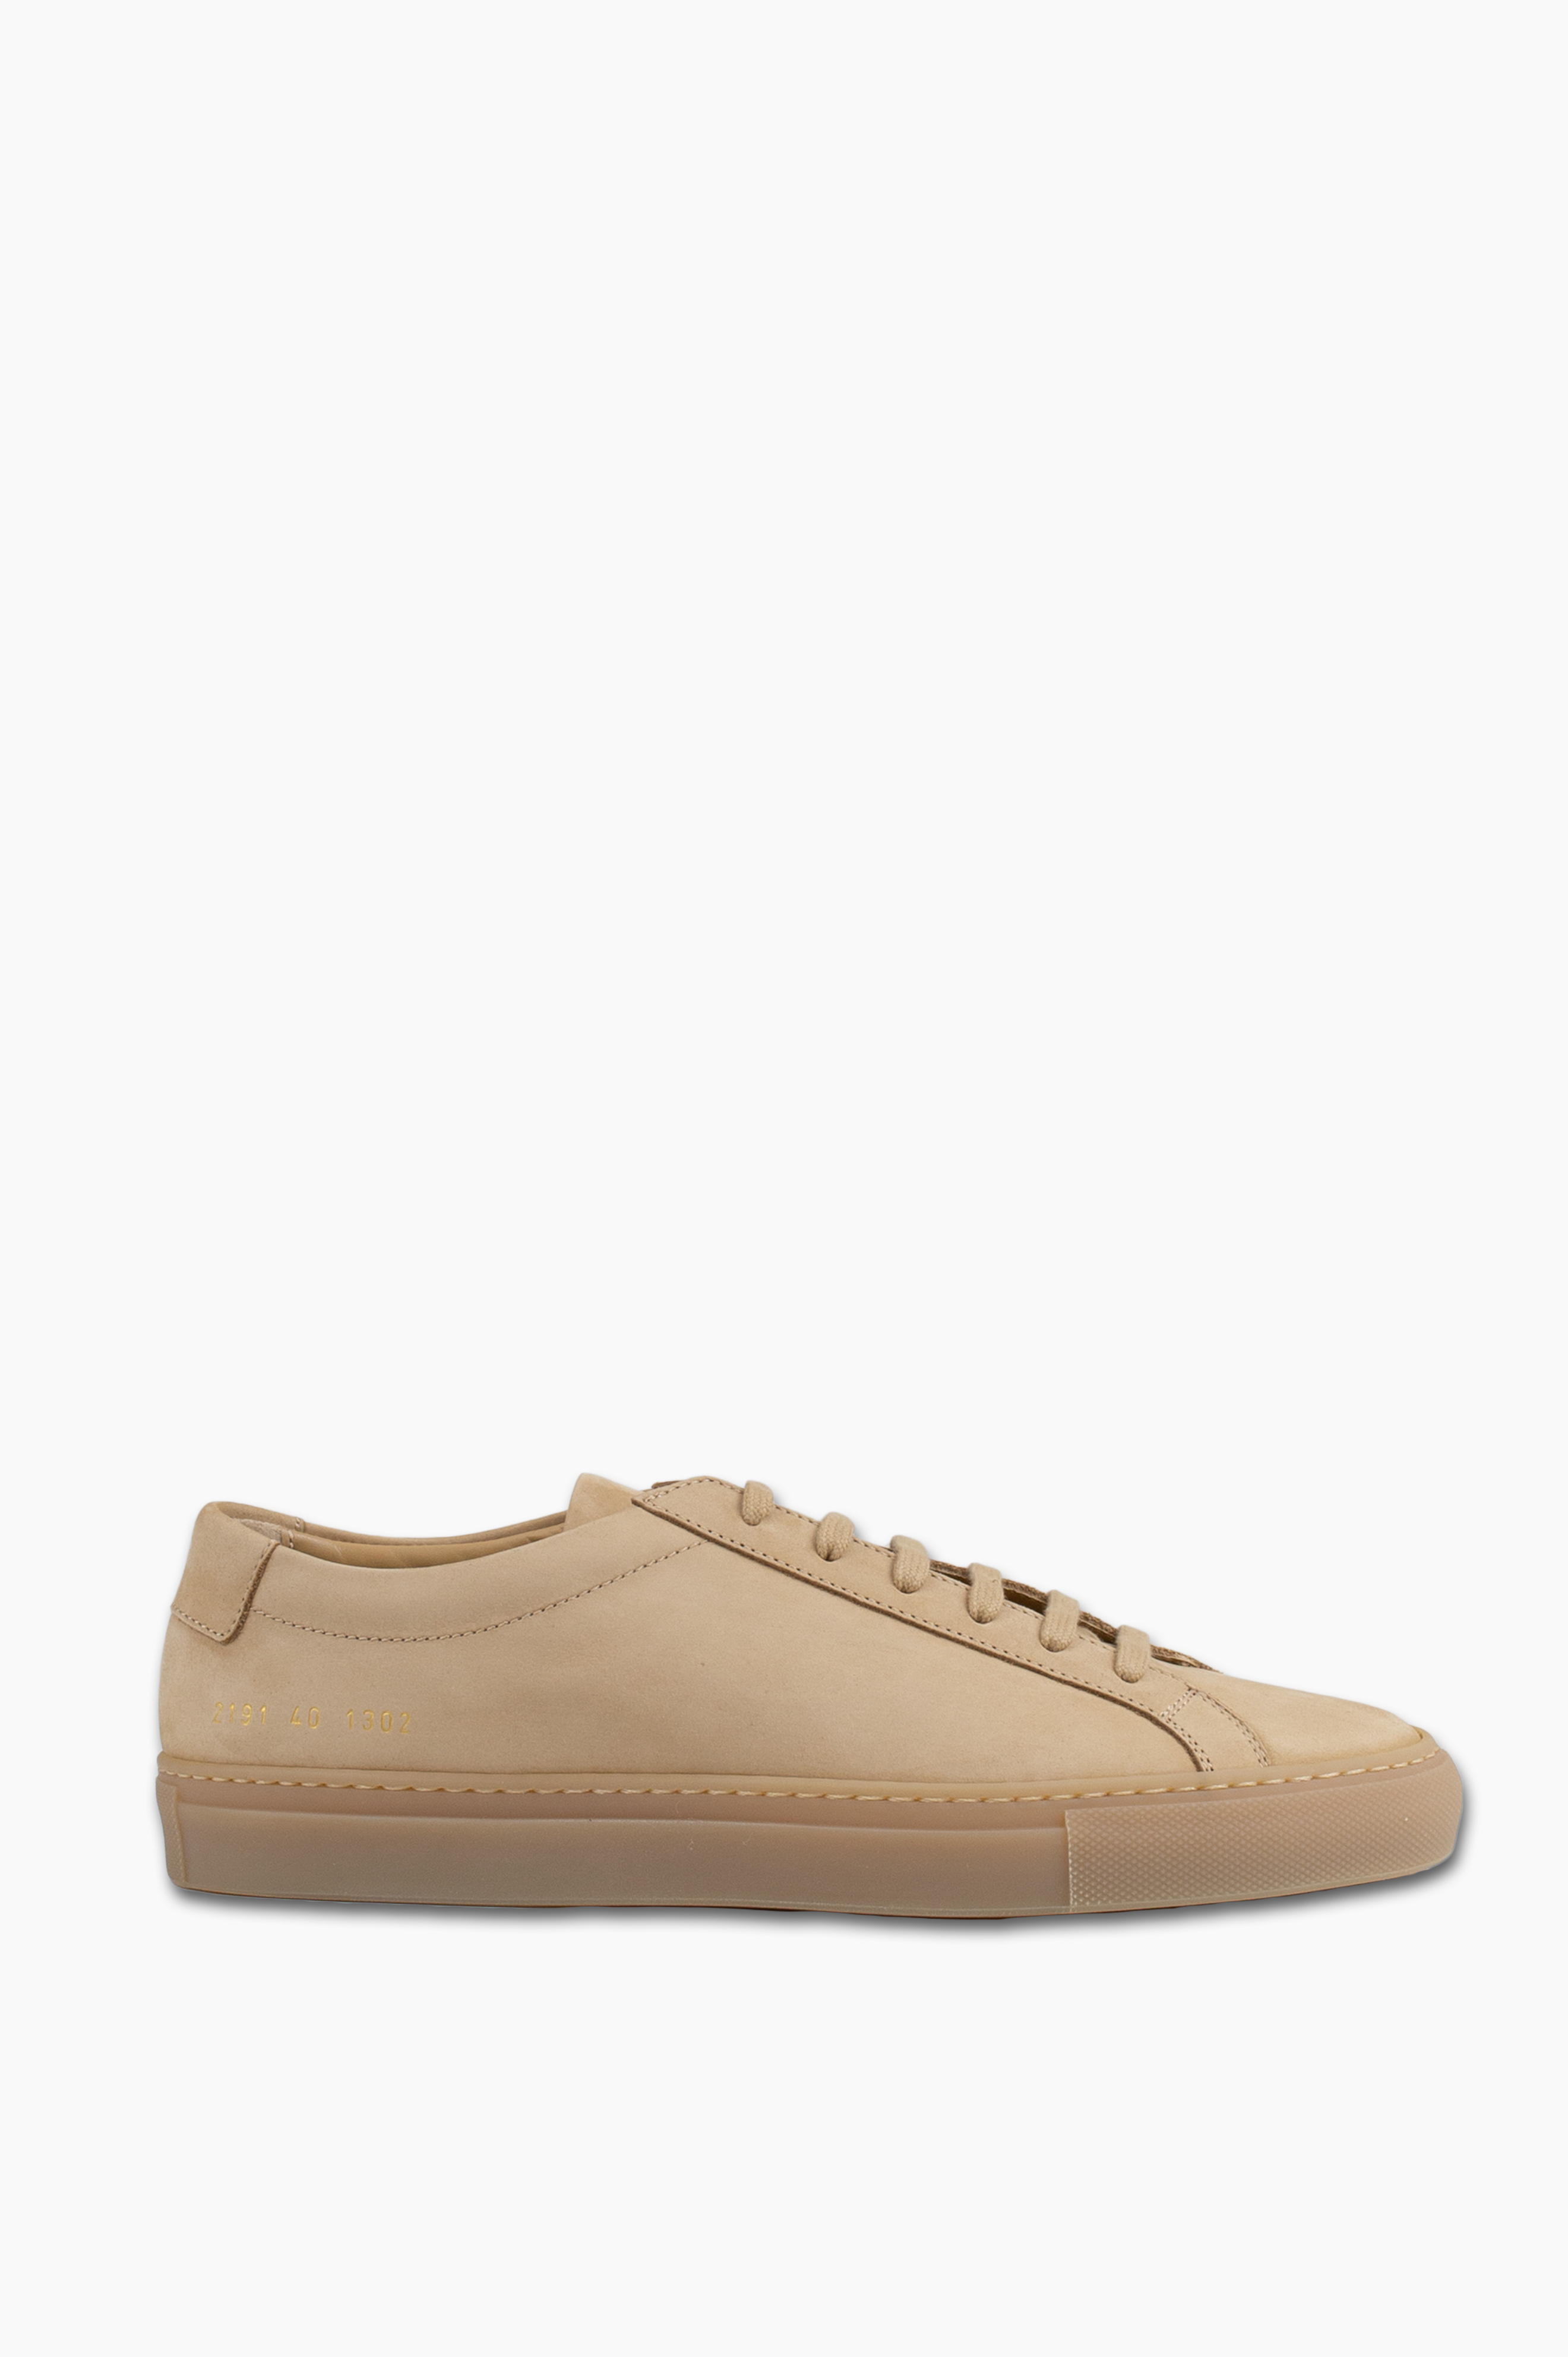 Original Achilles Low Nubuck Tan